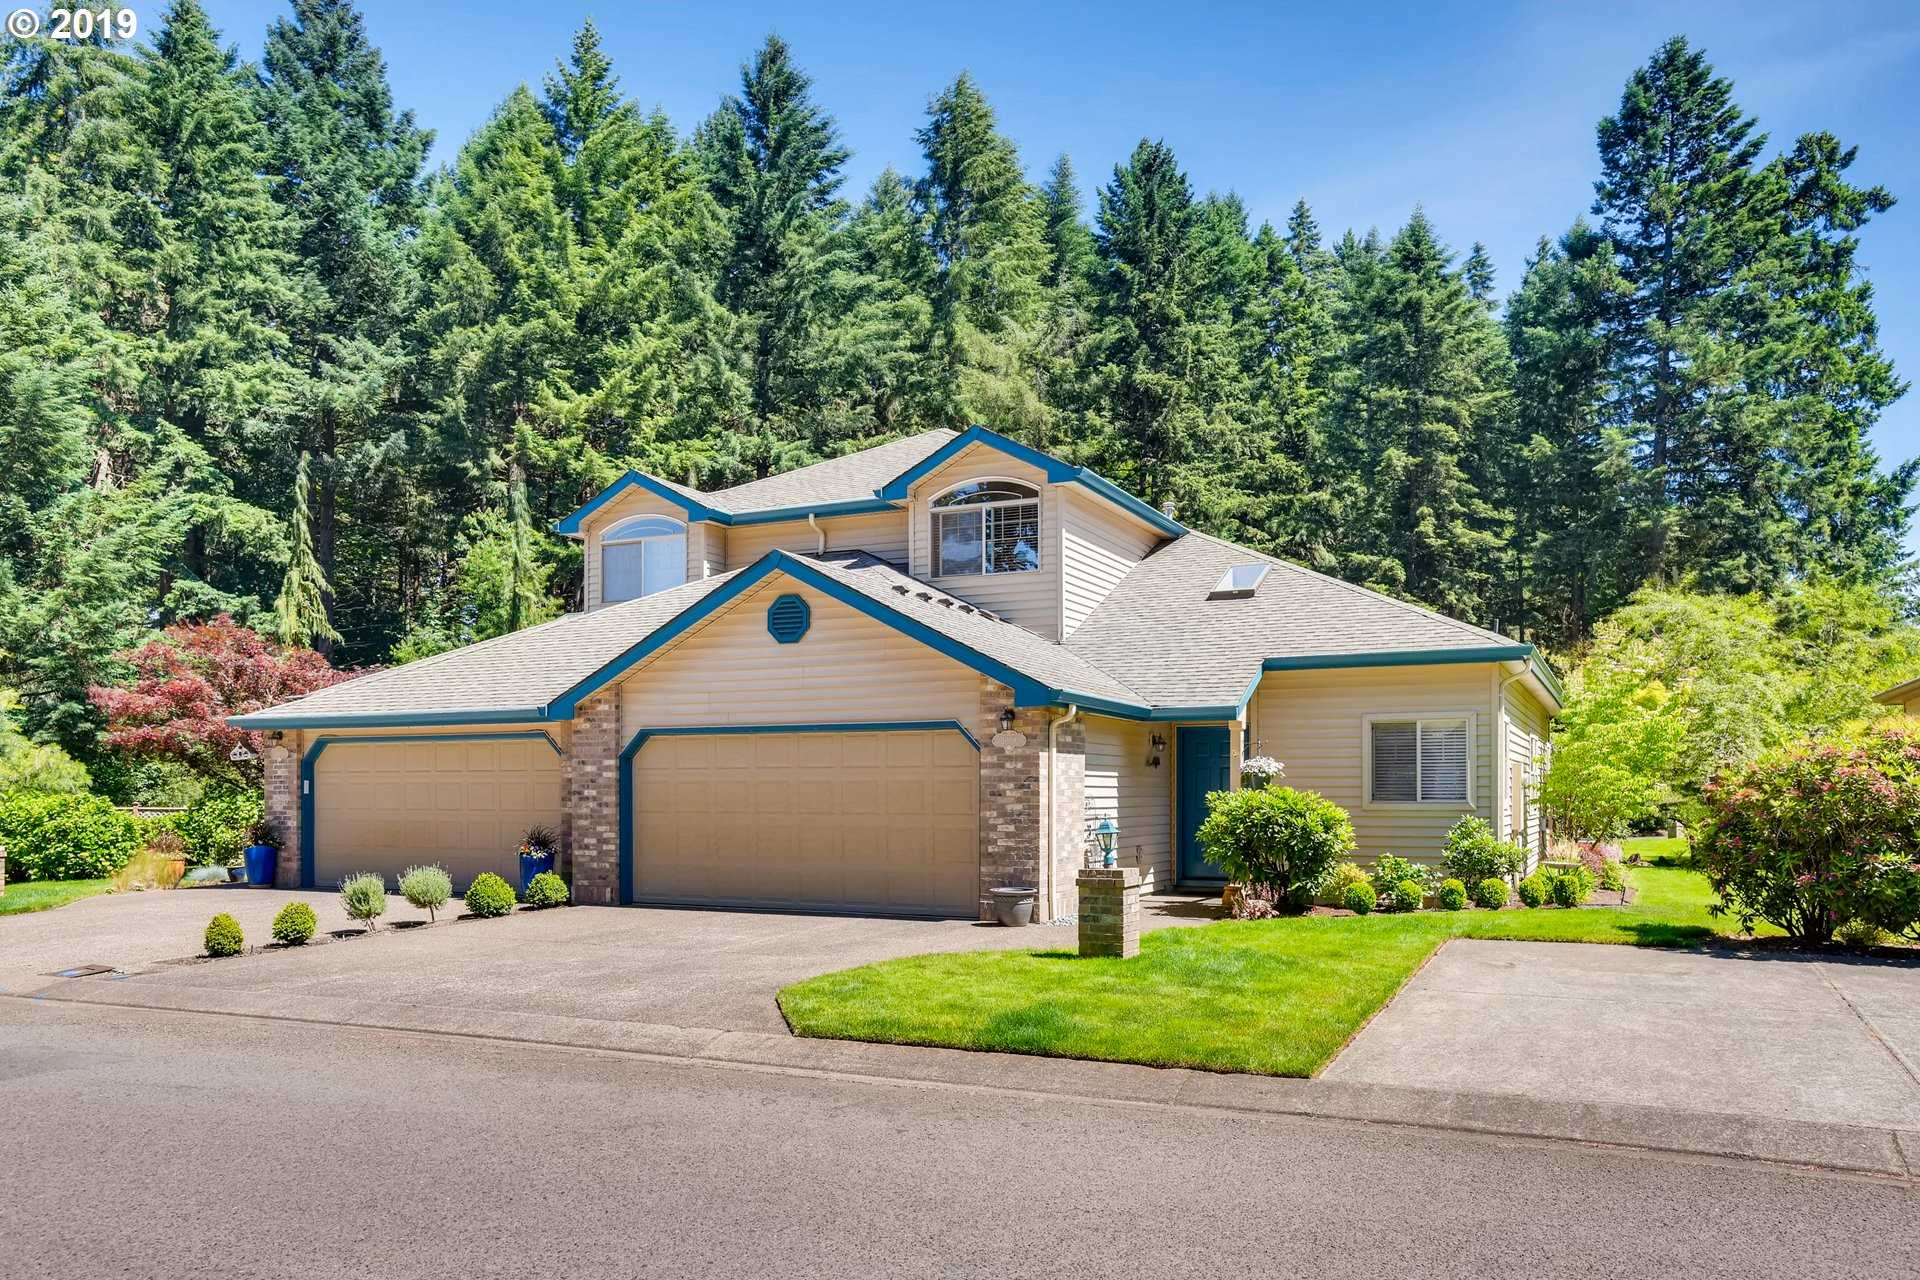 $379,900 - 3Br/3Ba -  for Sale in Manor On The Green, Canby